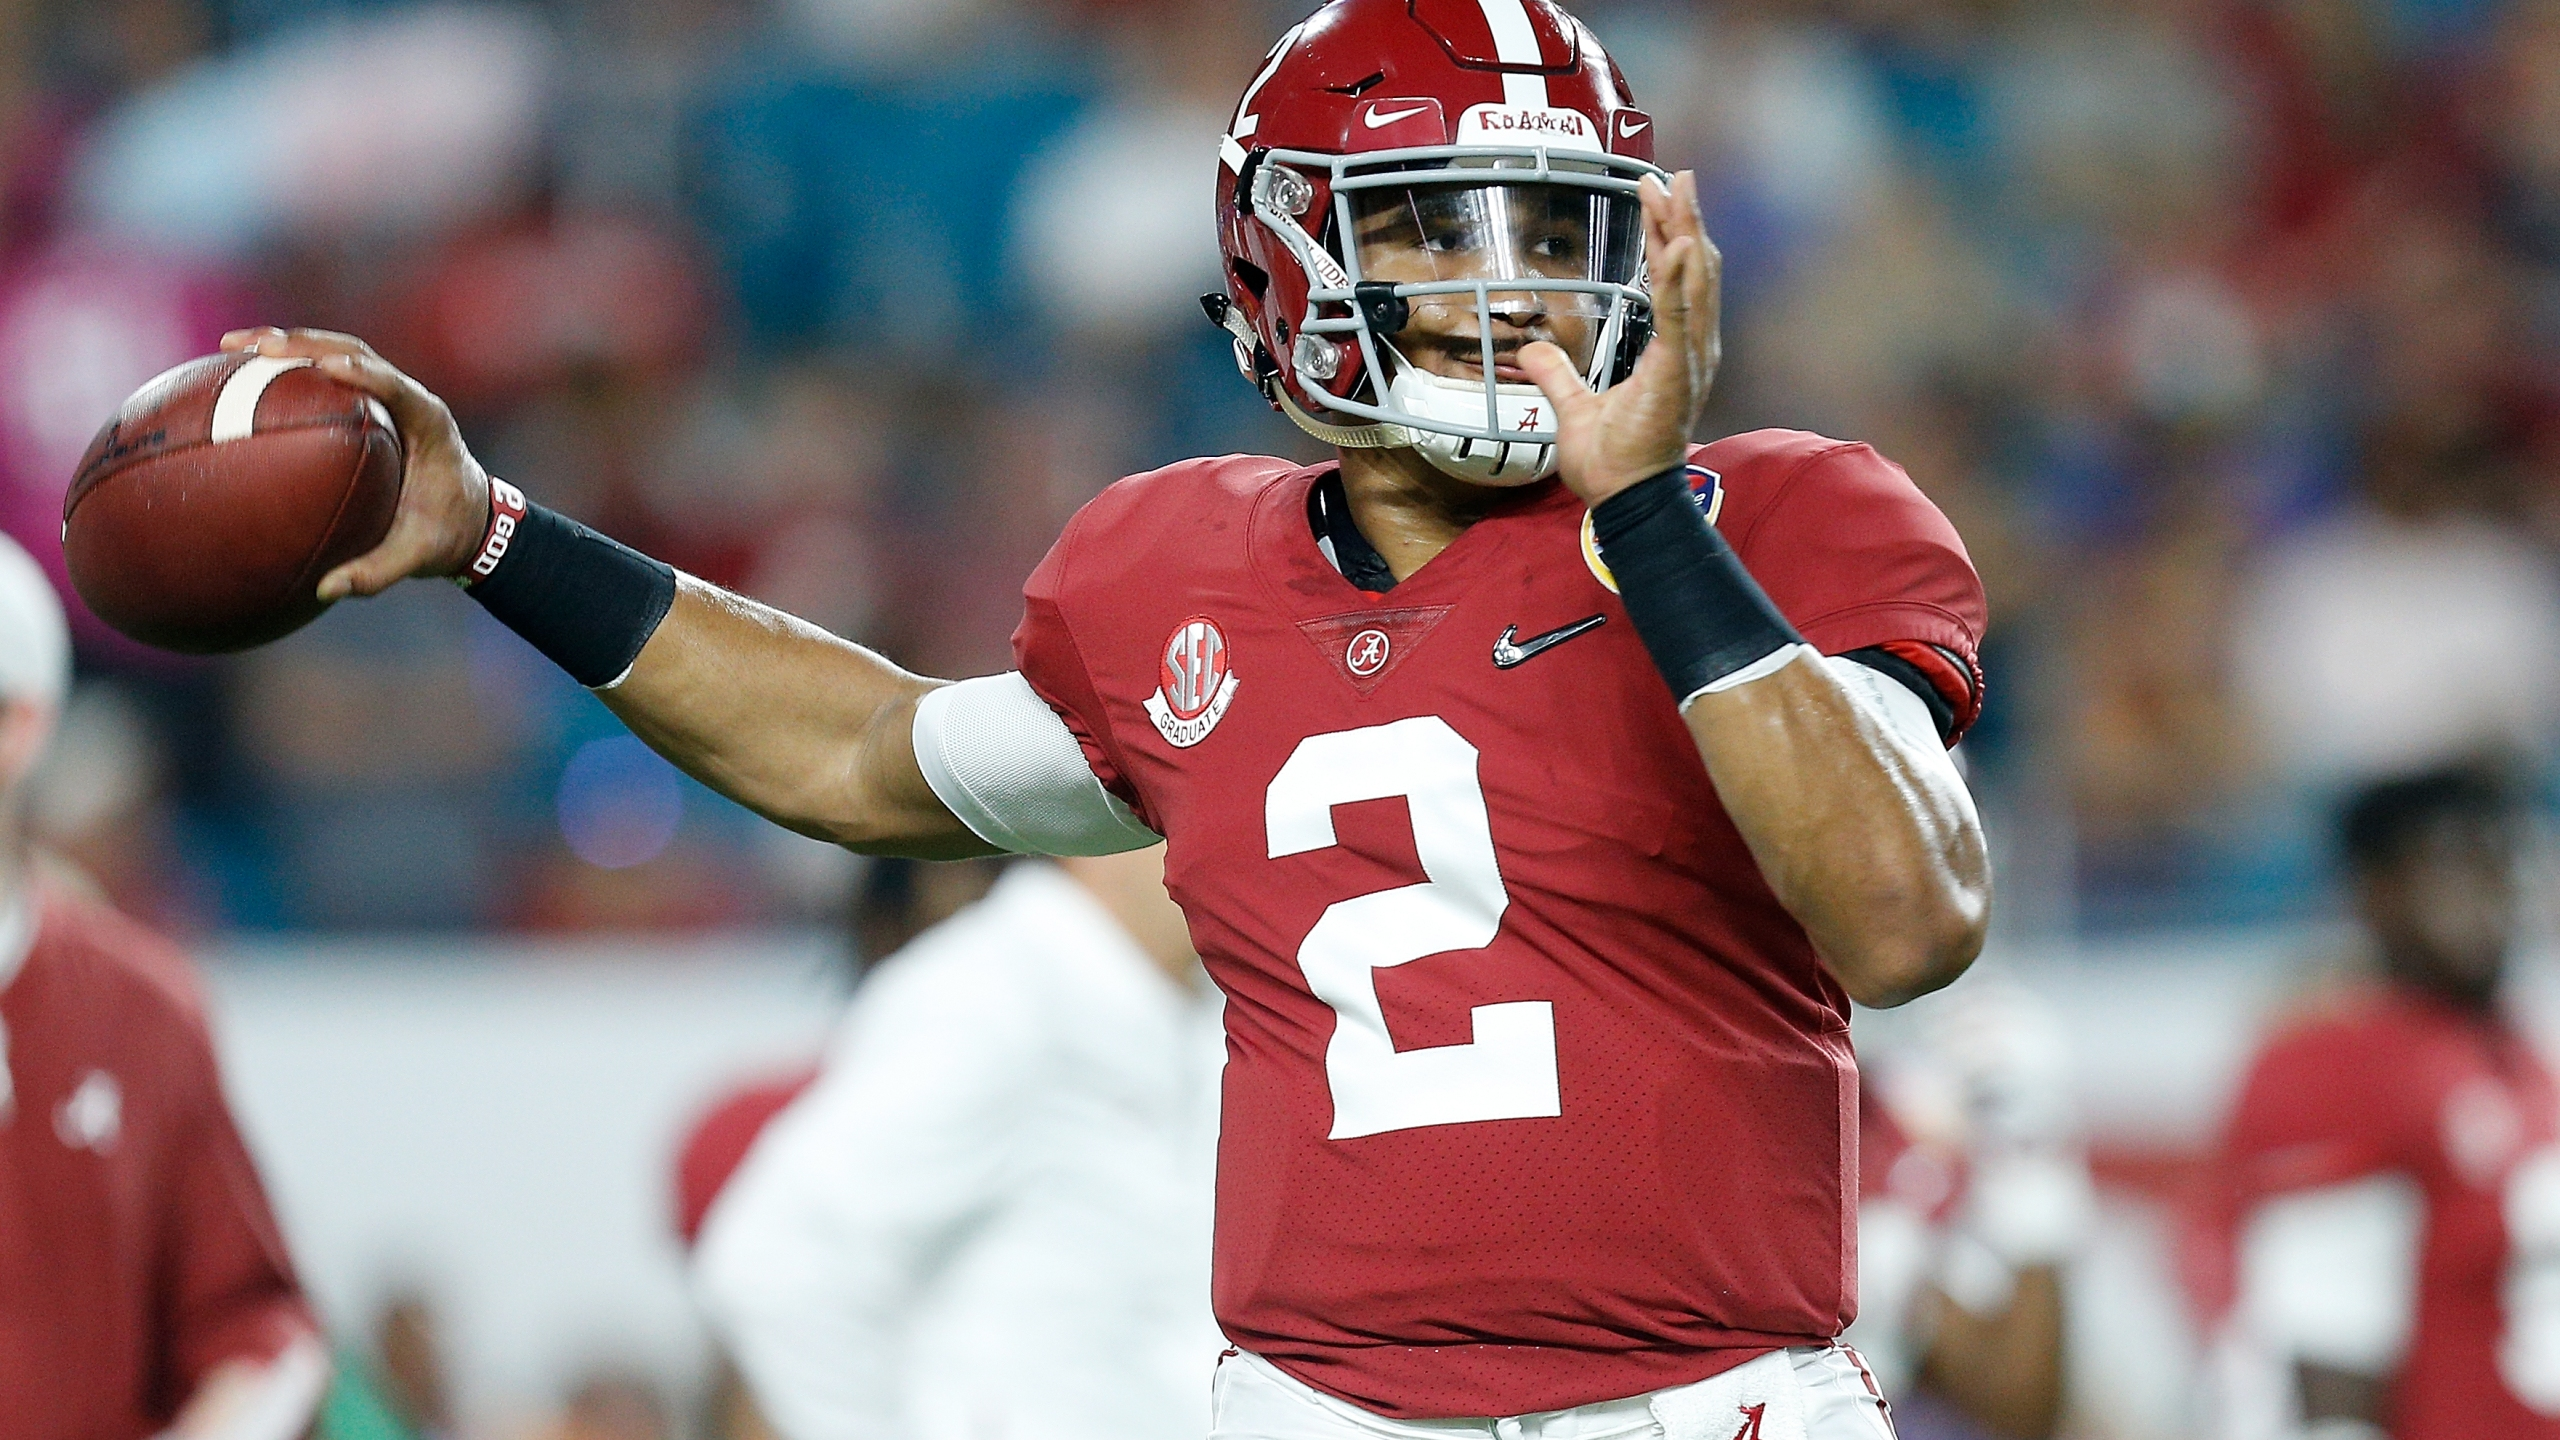 OU: Jalen Hurts is officially a Sooner